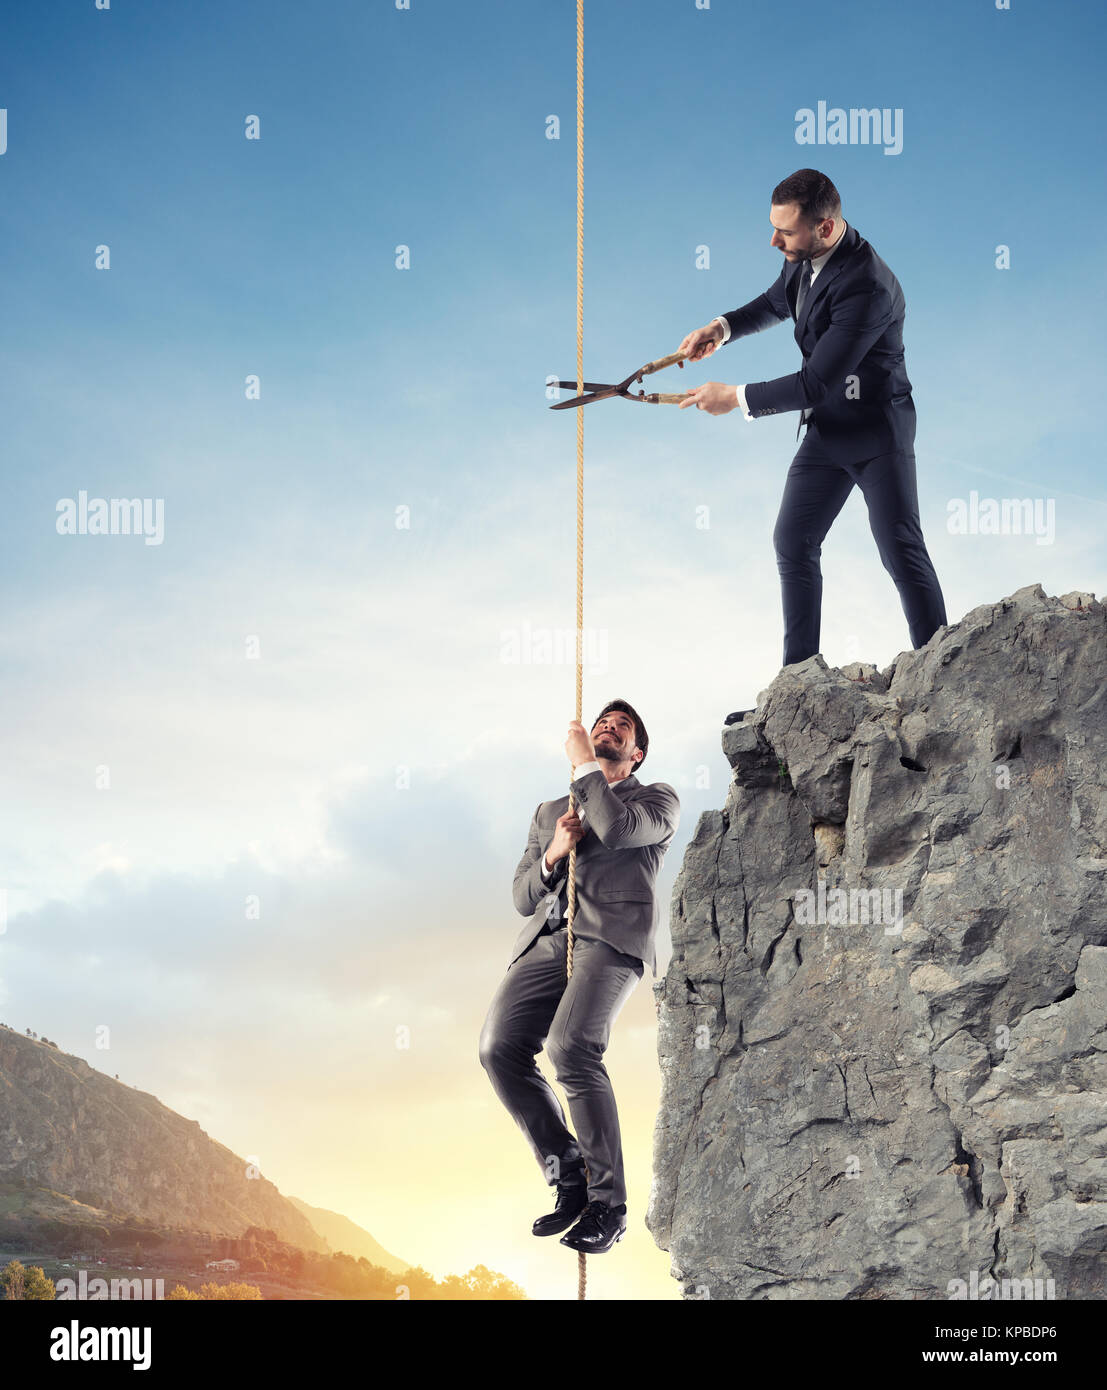 Businessman who doesn't help a competitor. Concept of unfair competition - Stock Image